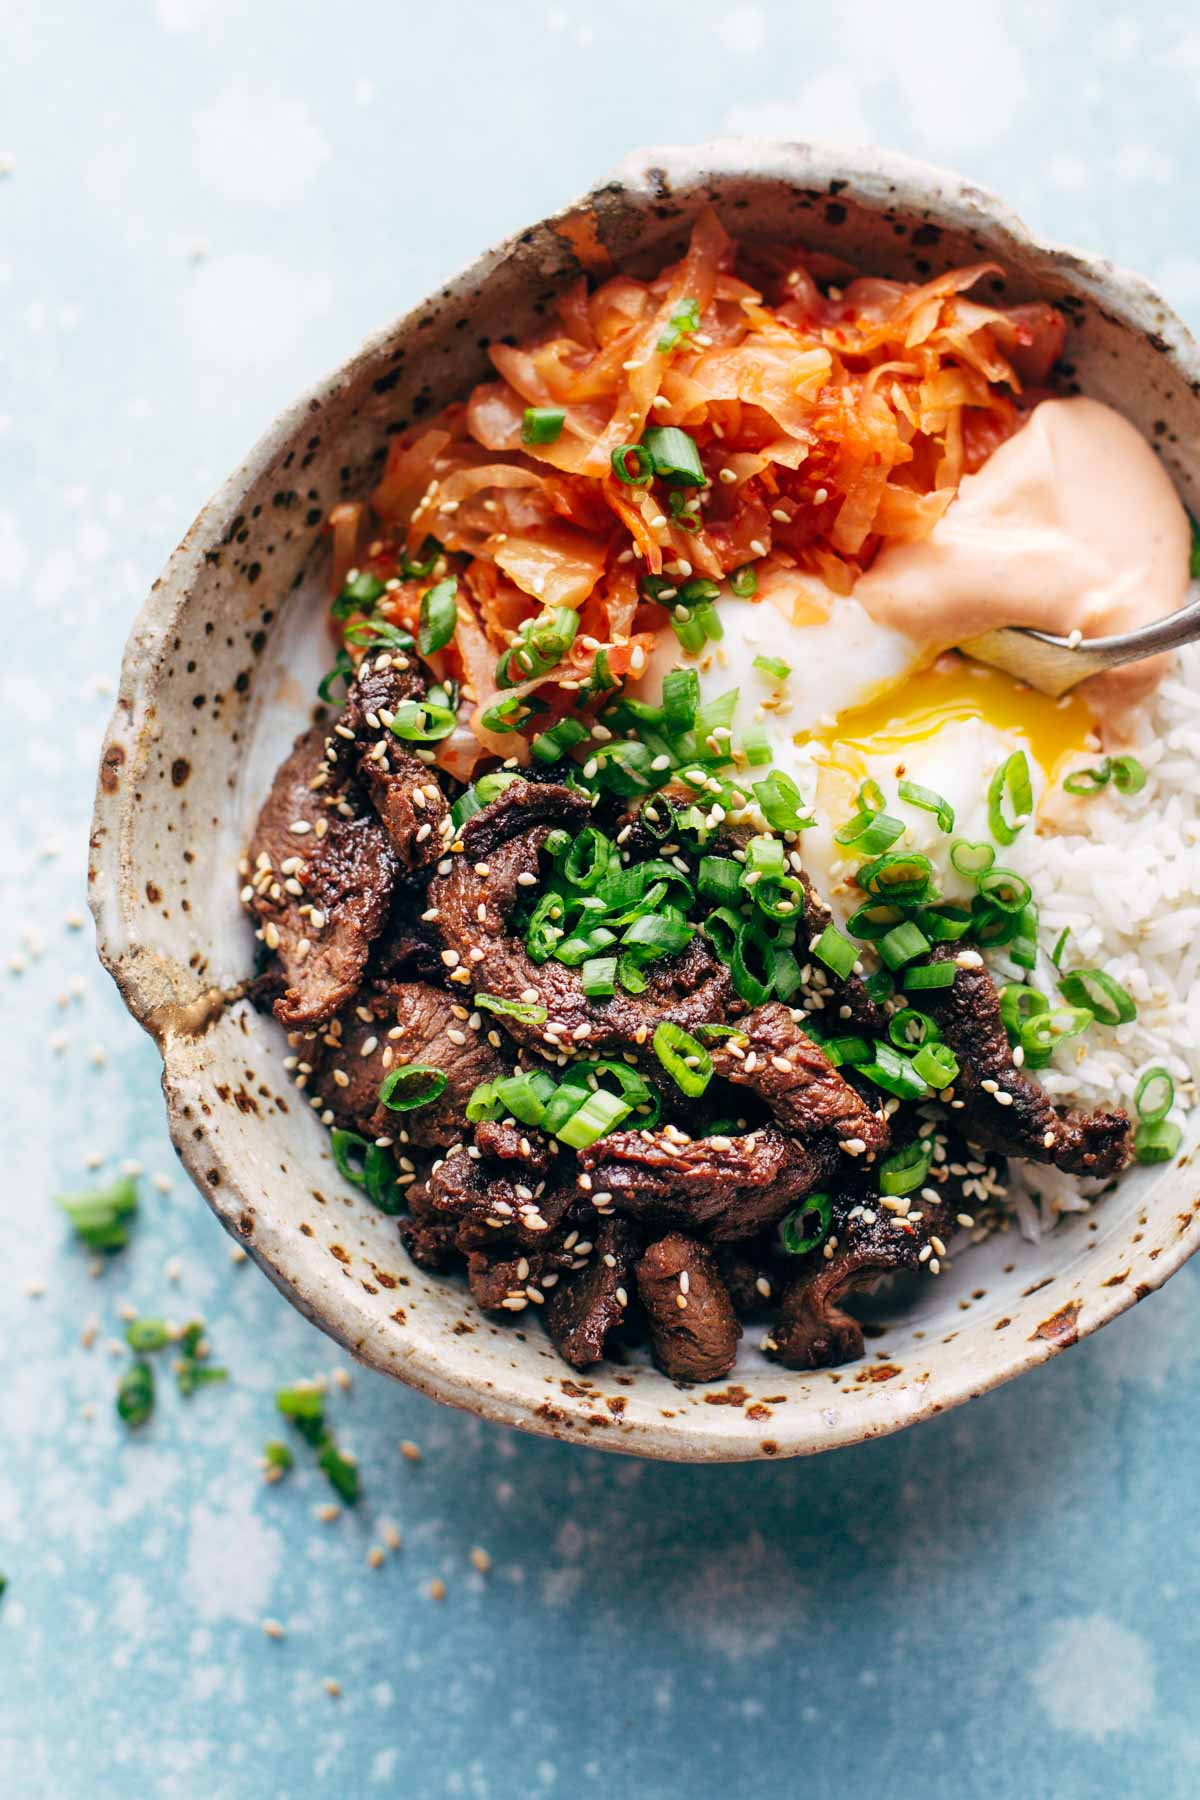 10 Dinner Bowls to Try This Week